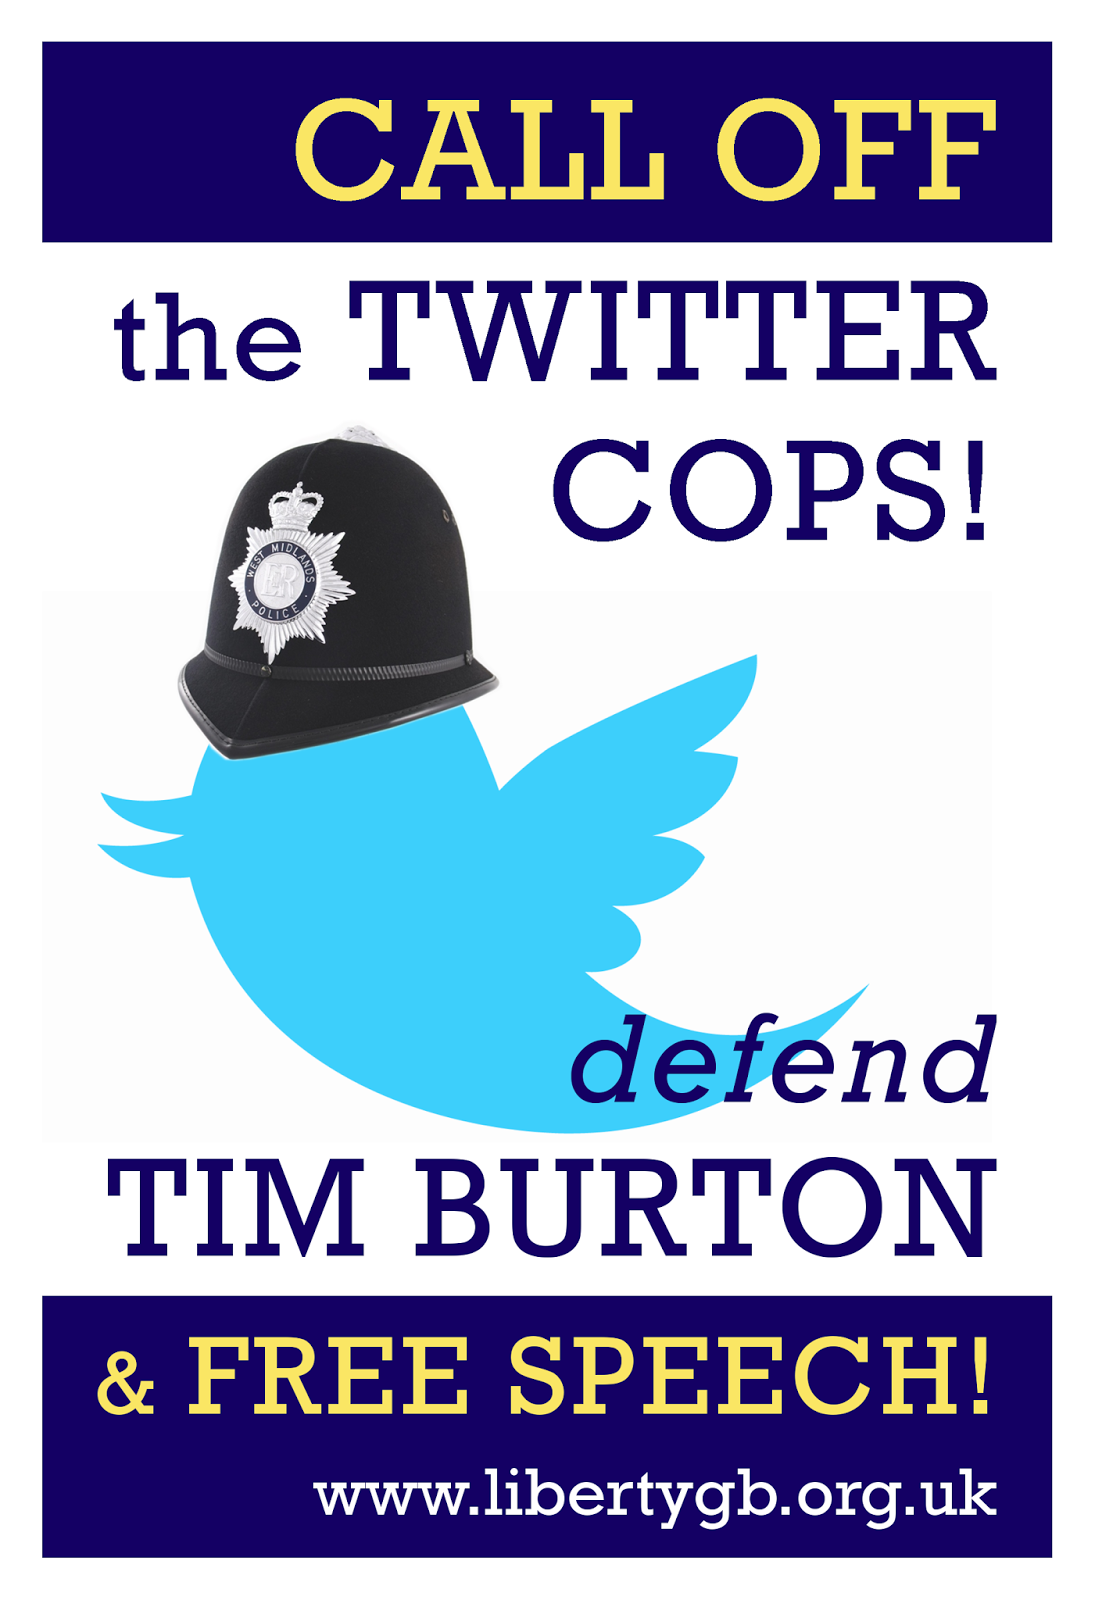 Liberty GB placard at Tim Burton's trial: Call Off the Twitter Cops!